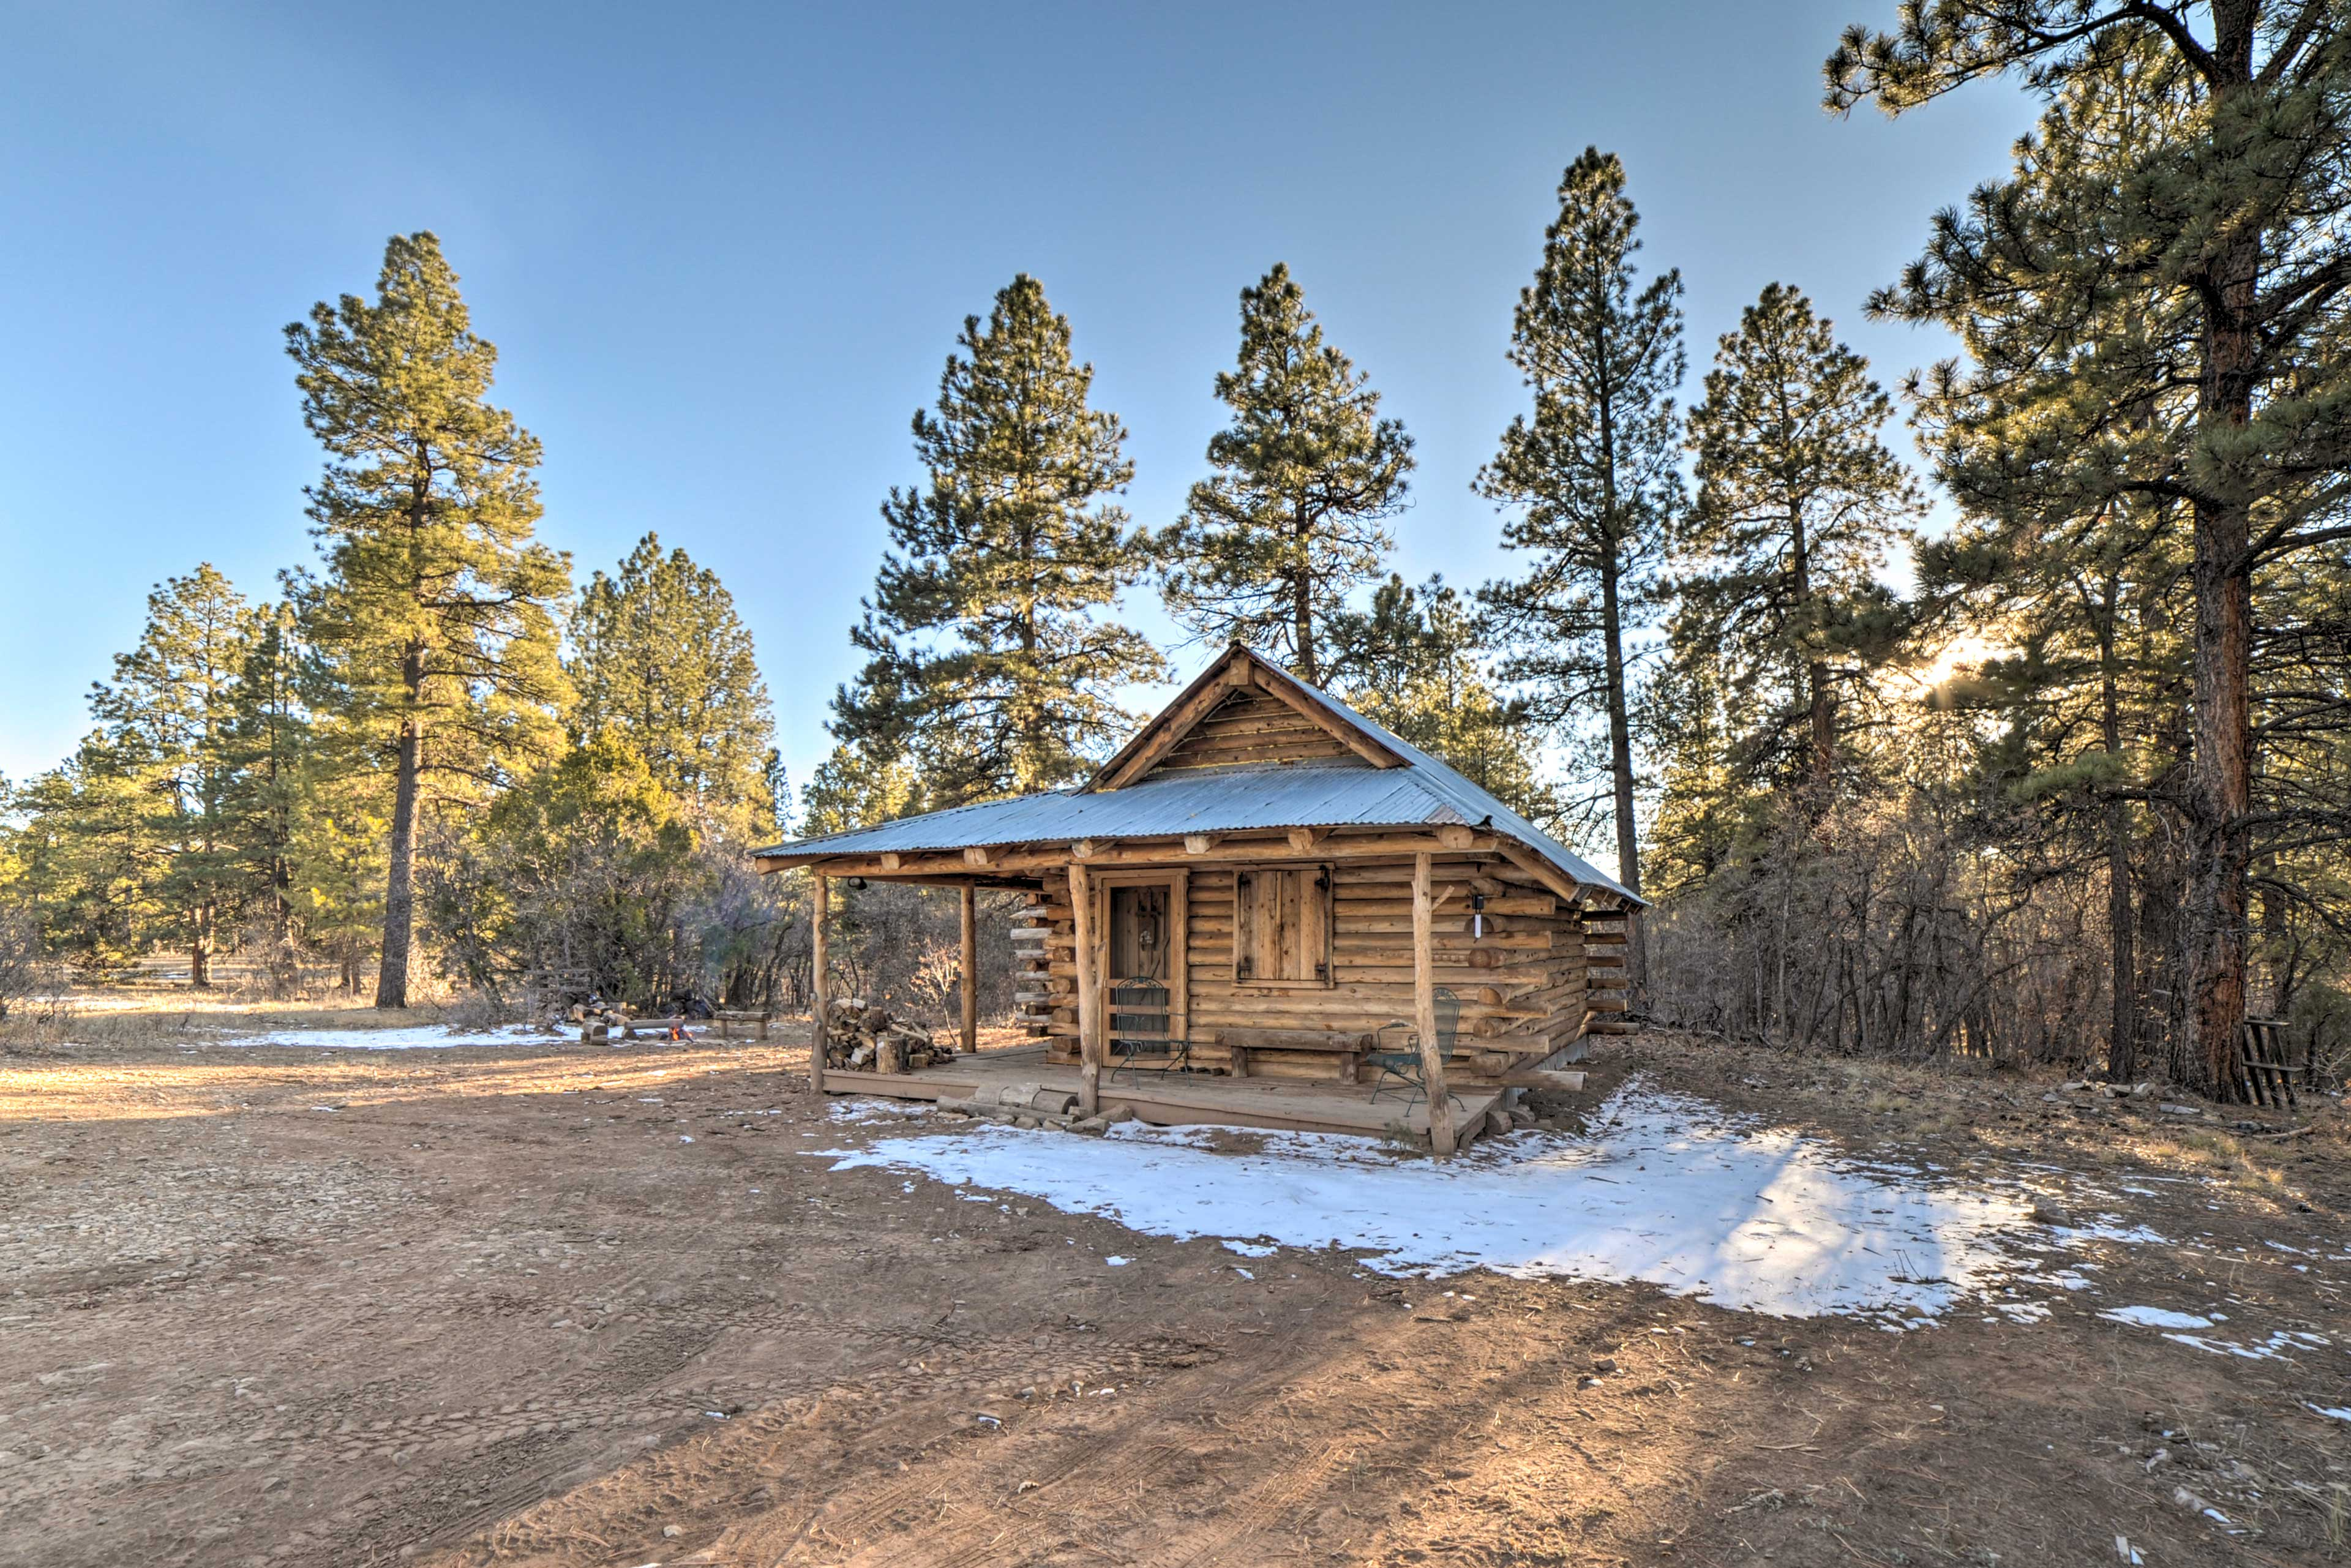 Run away to the San Juan National Forest and stay at this secluded sanctuary.